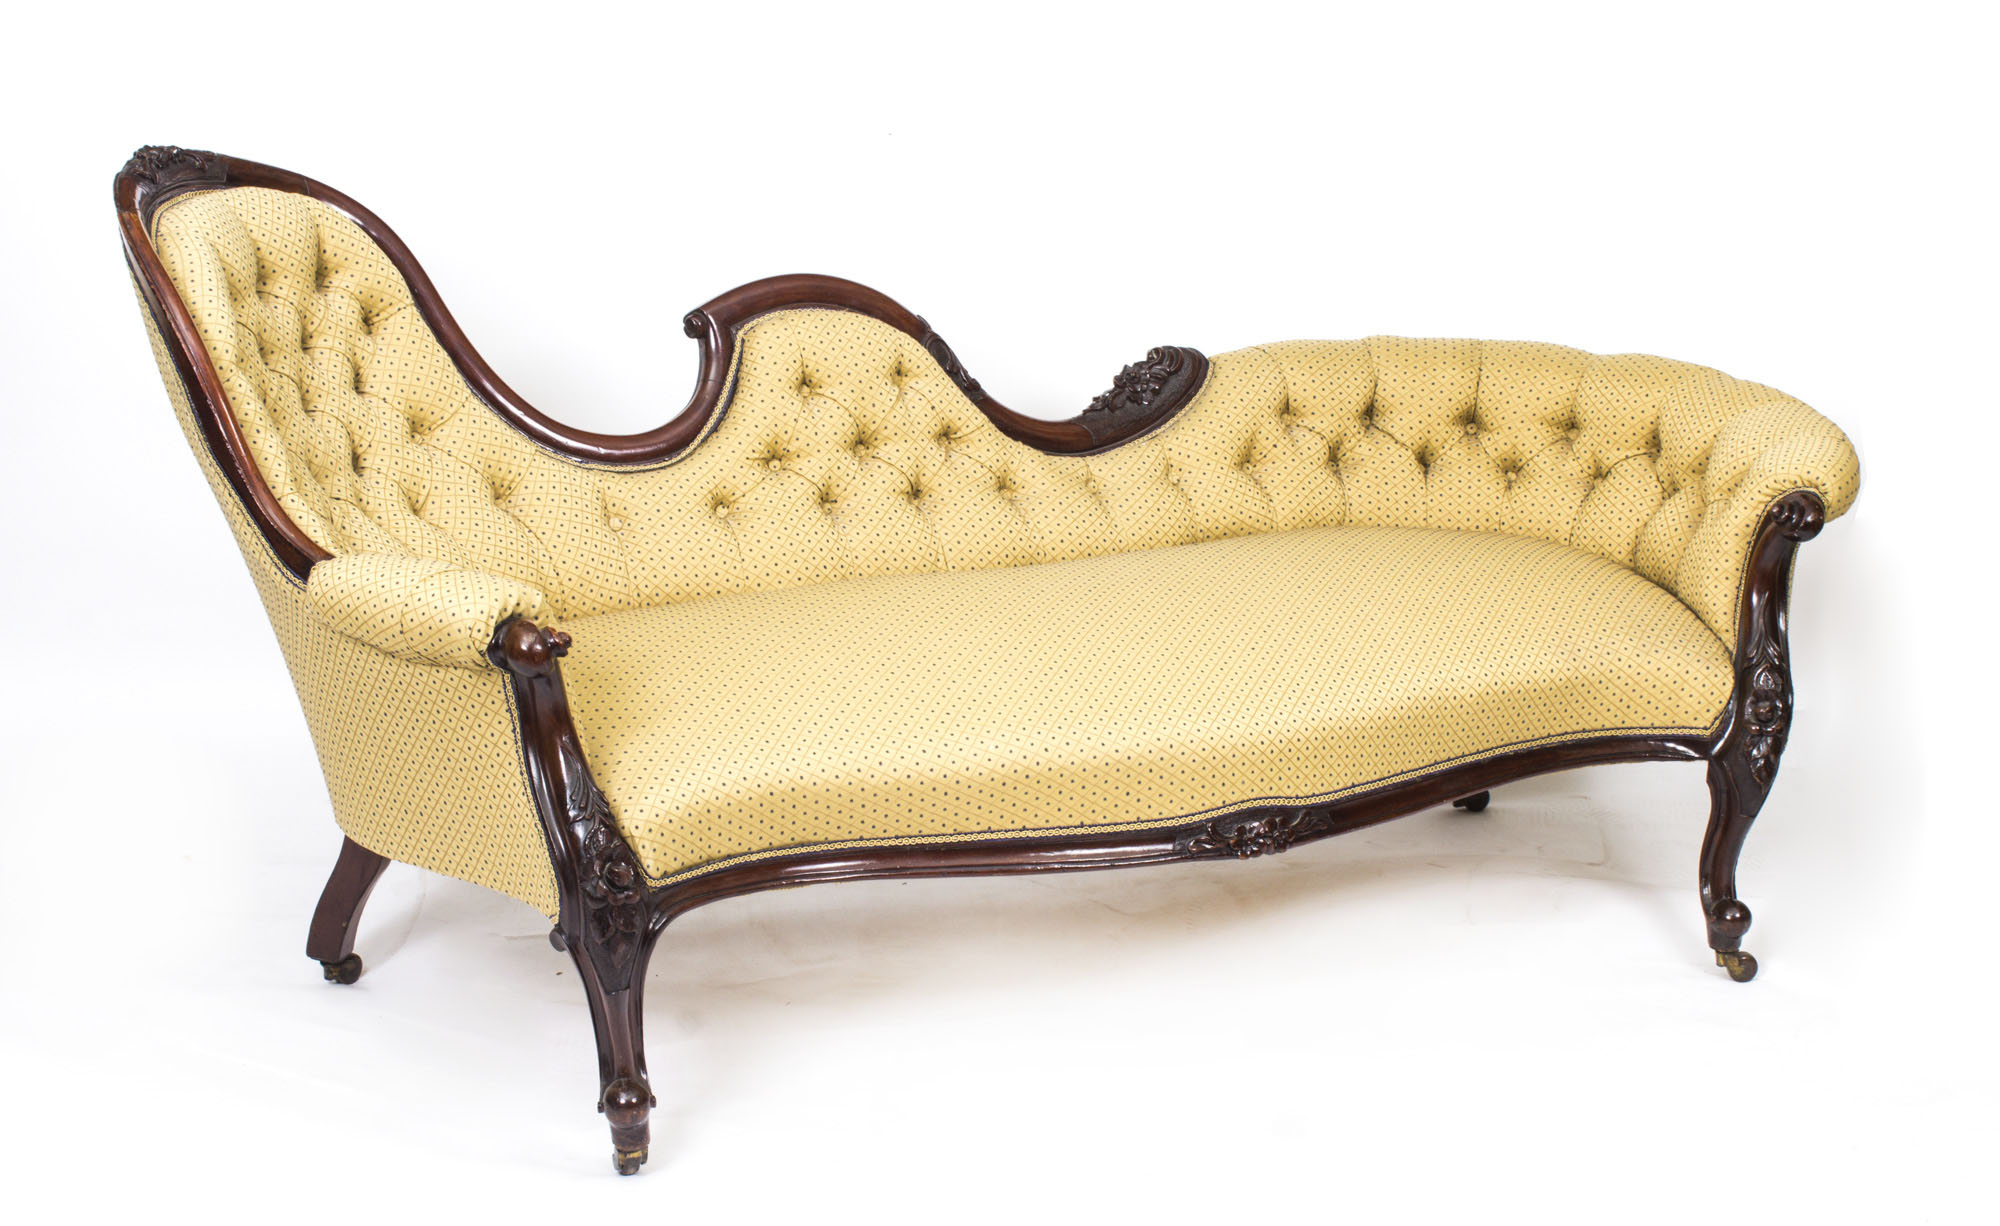 Antique victorian walnut sofa chaise longue settee for Antique victorian chaise lounge